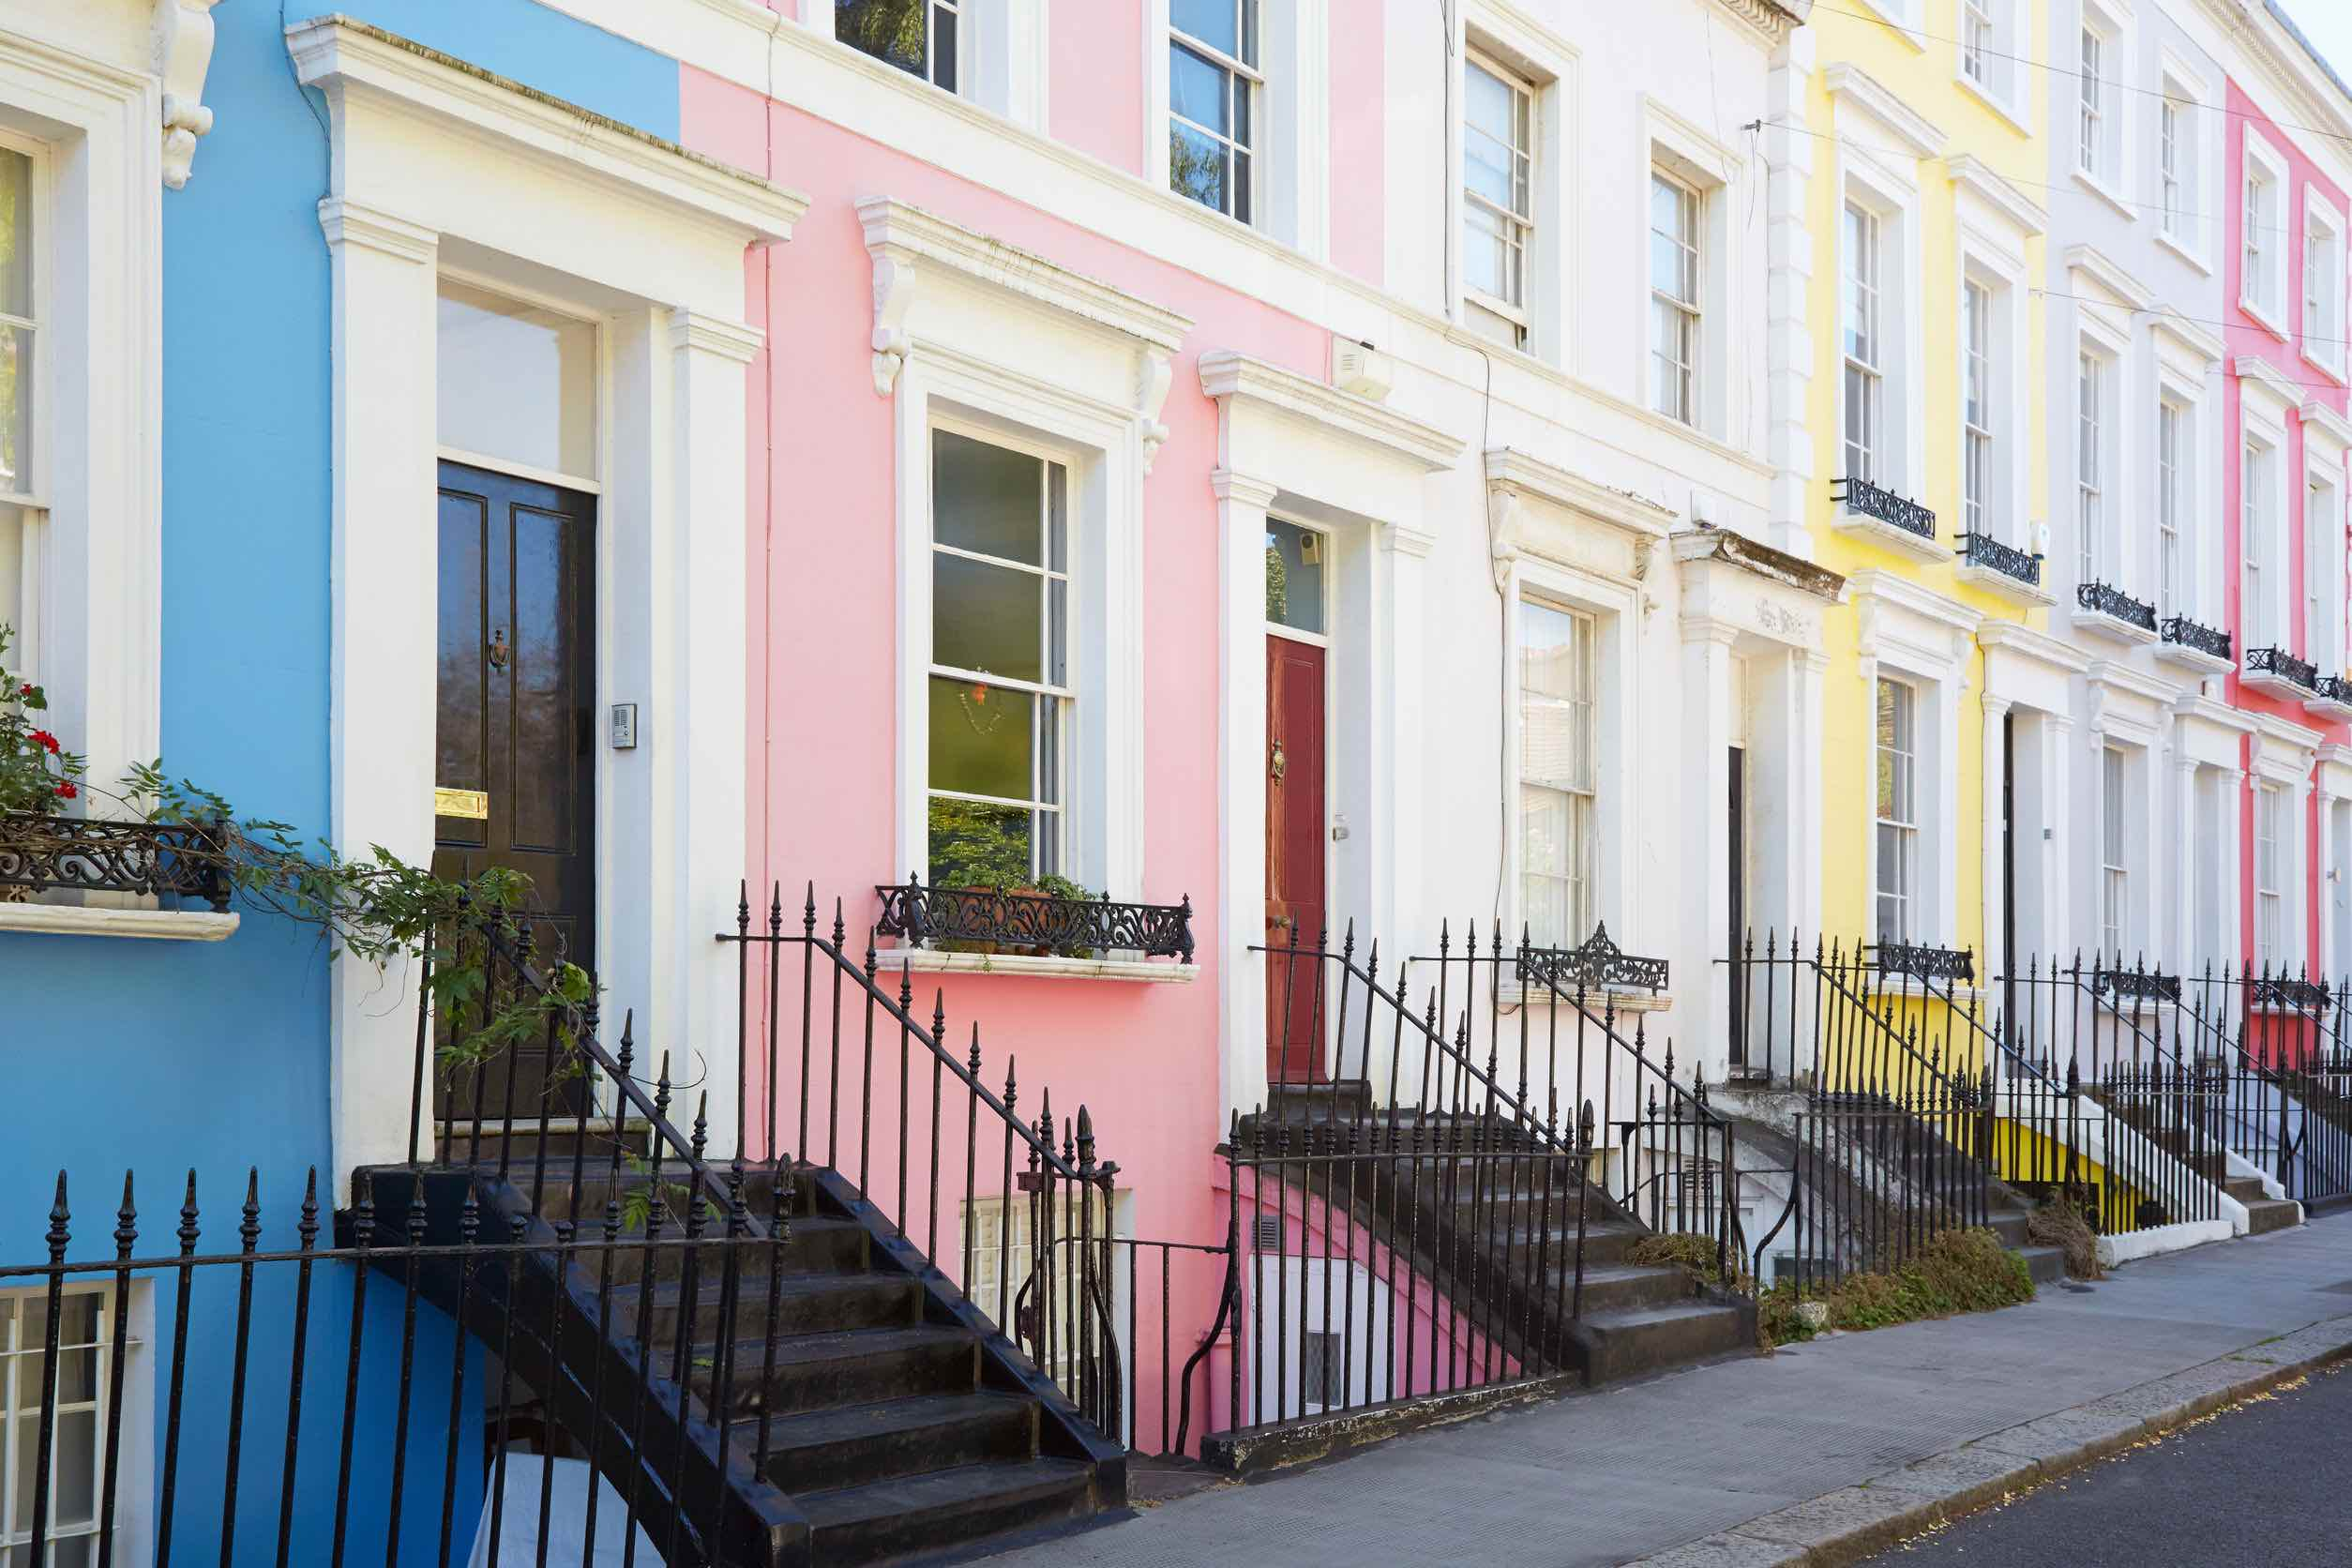 London 48 Hour Guide: Where To Stay, What To Eat And Best Neighbourhoods